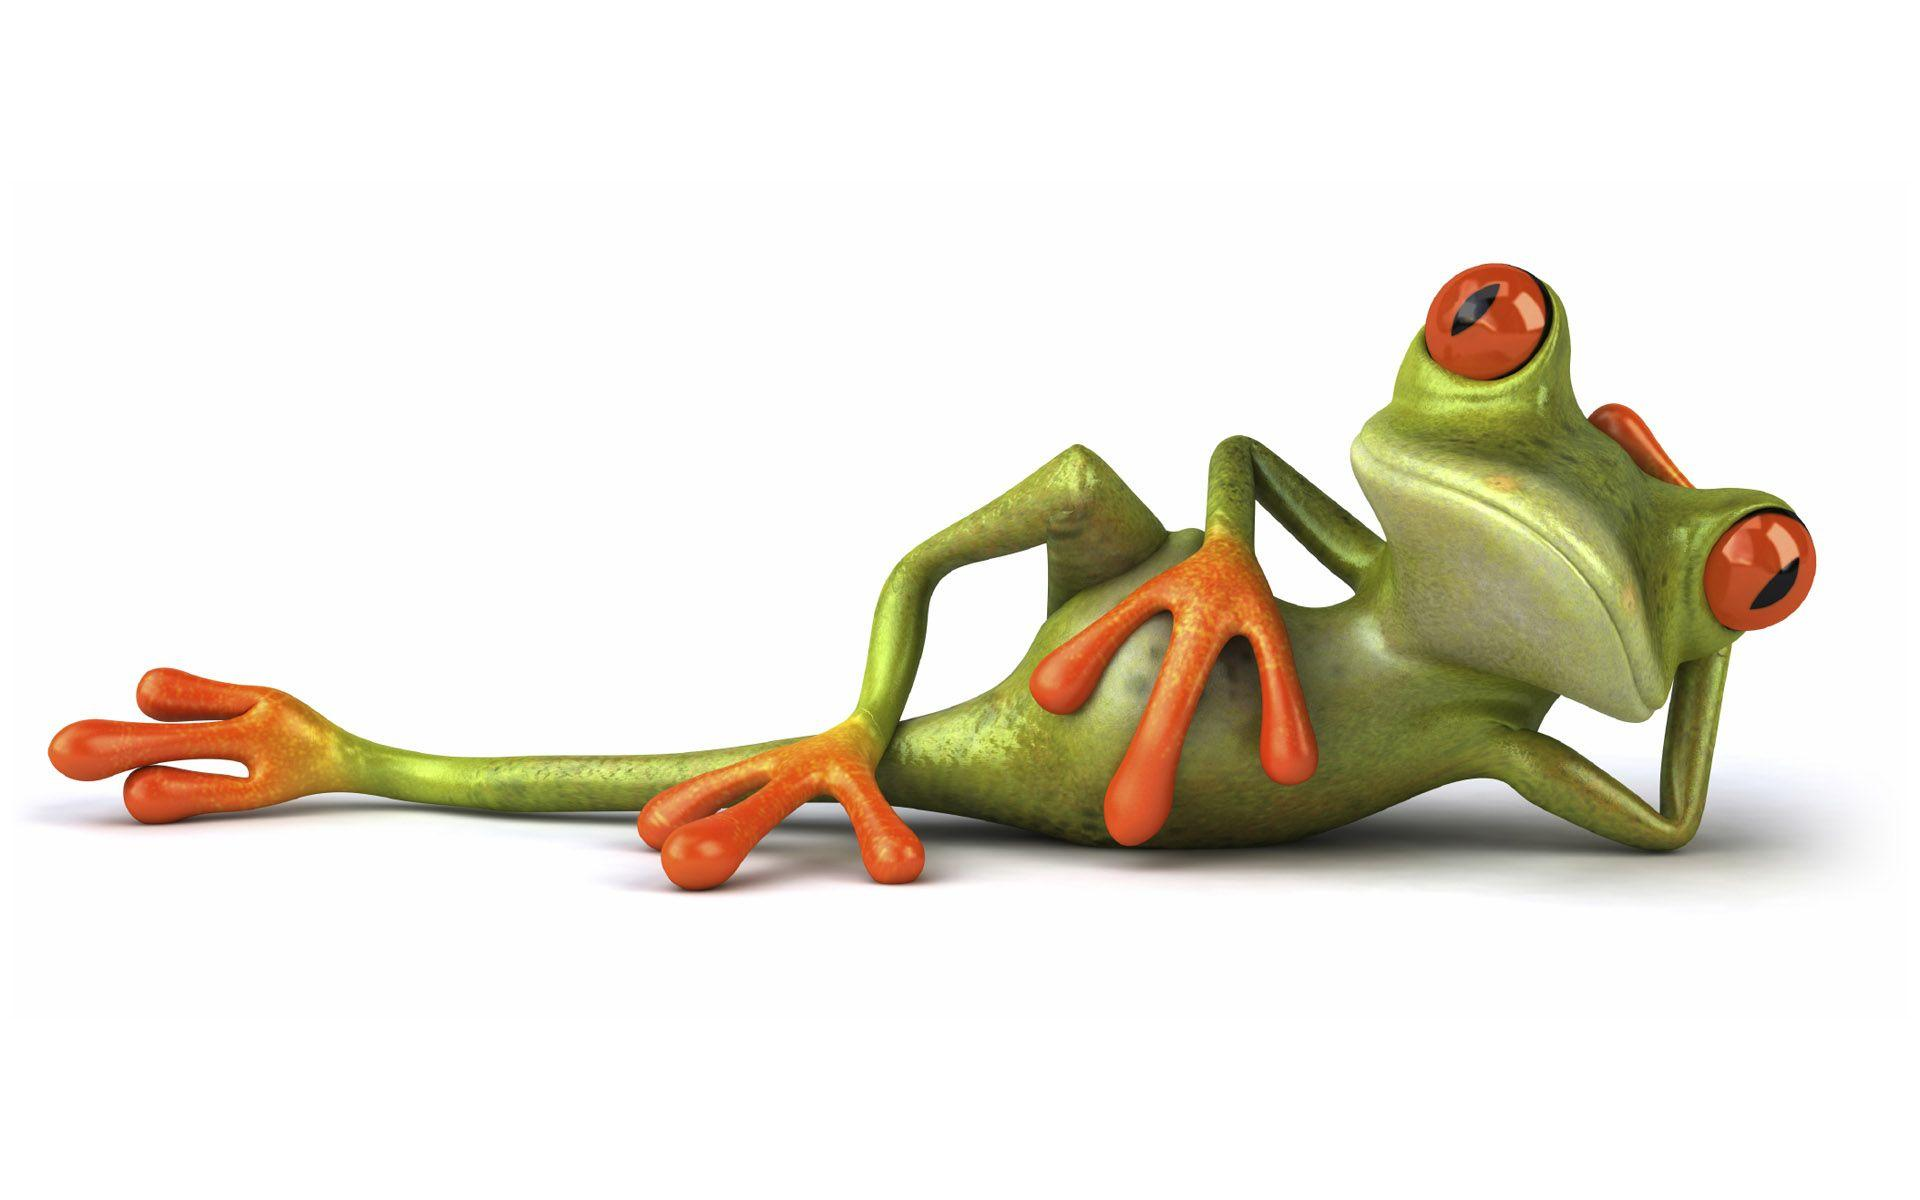 Funny frog wallpapers wallpaper cave 3d funny frog wallpaper wallpaper download voltagebd Image collections